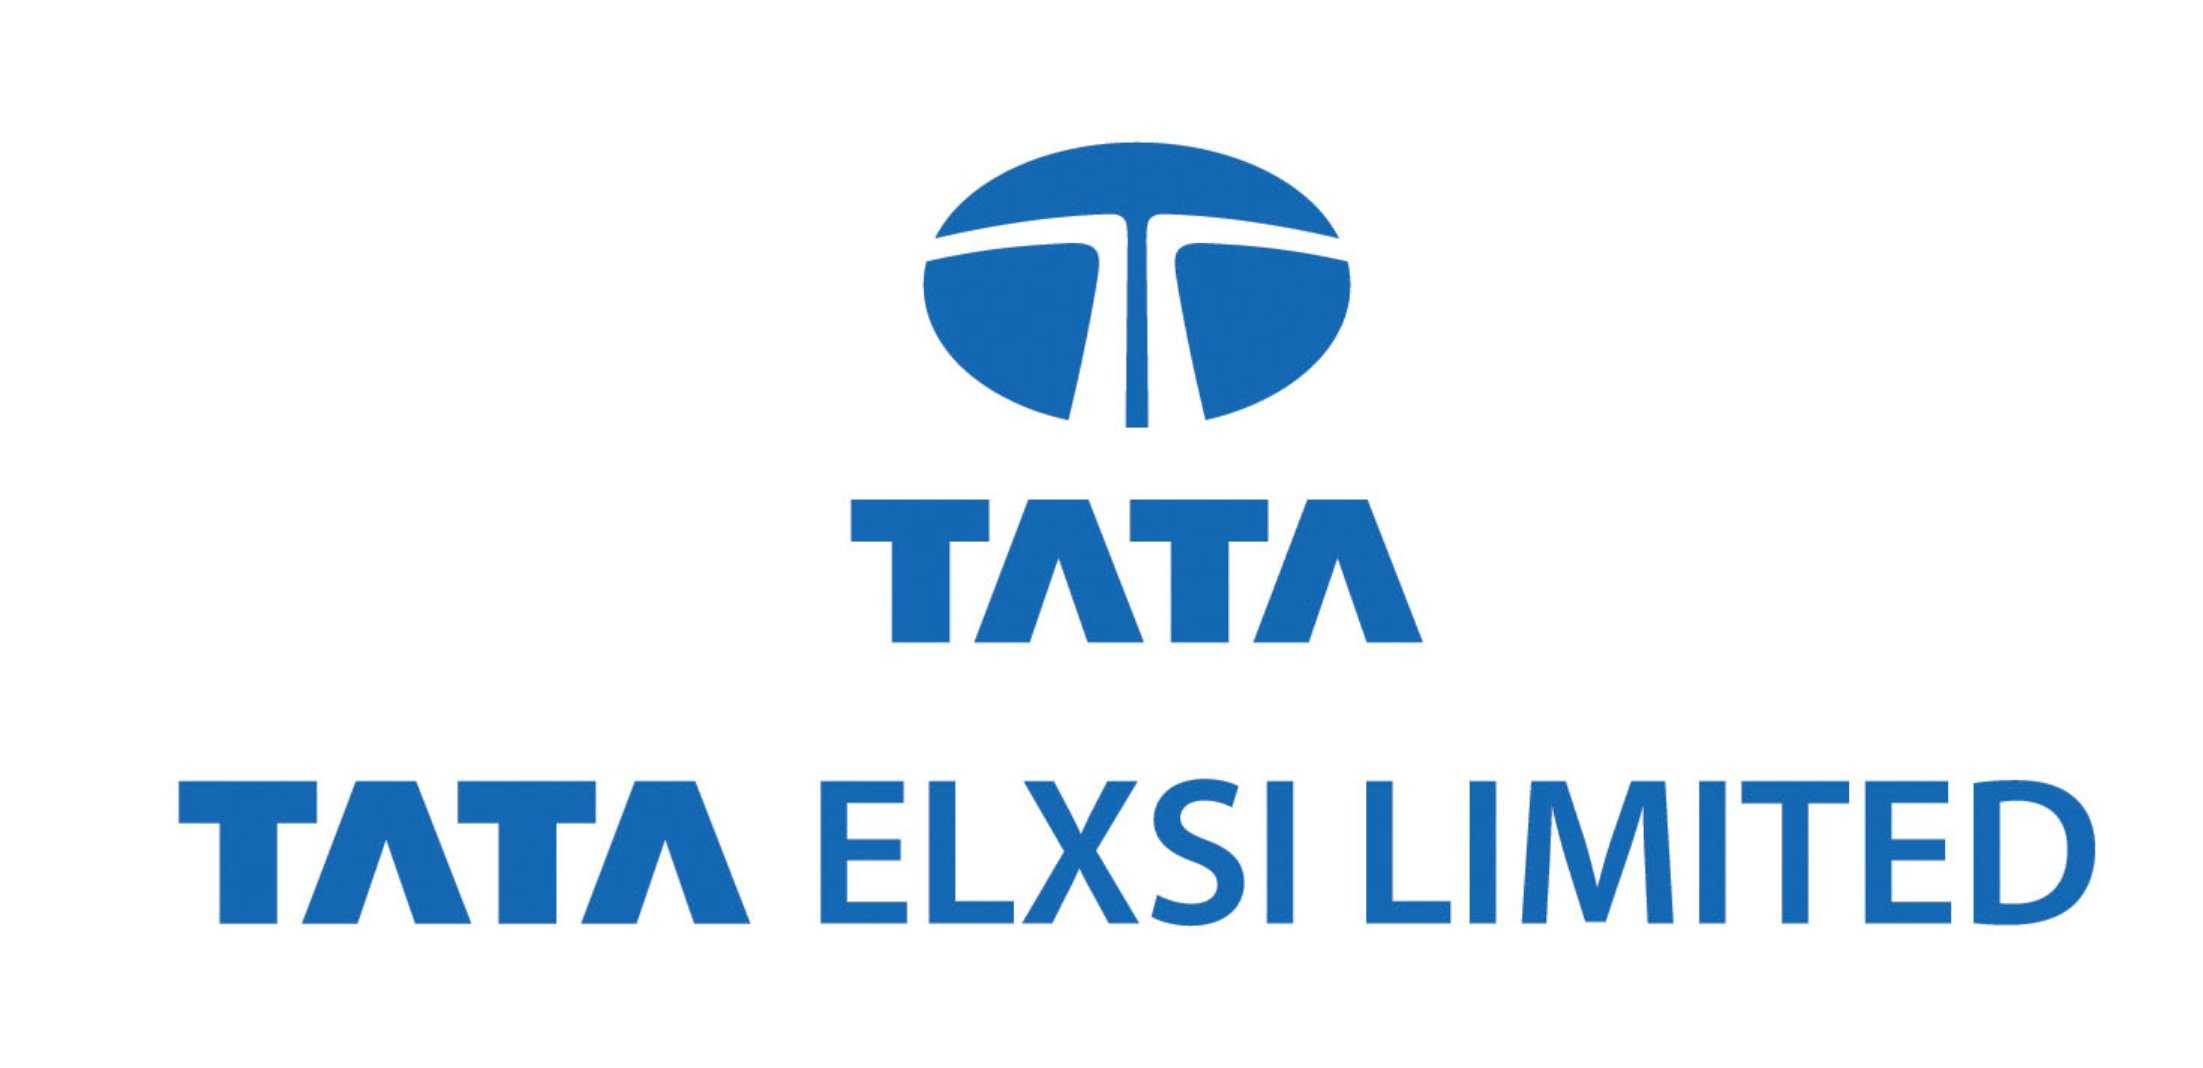 Q1 RESULTS FOR TATA ELXSI : Explained in Detail ?